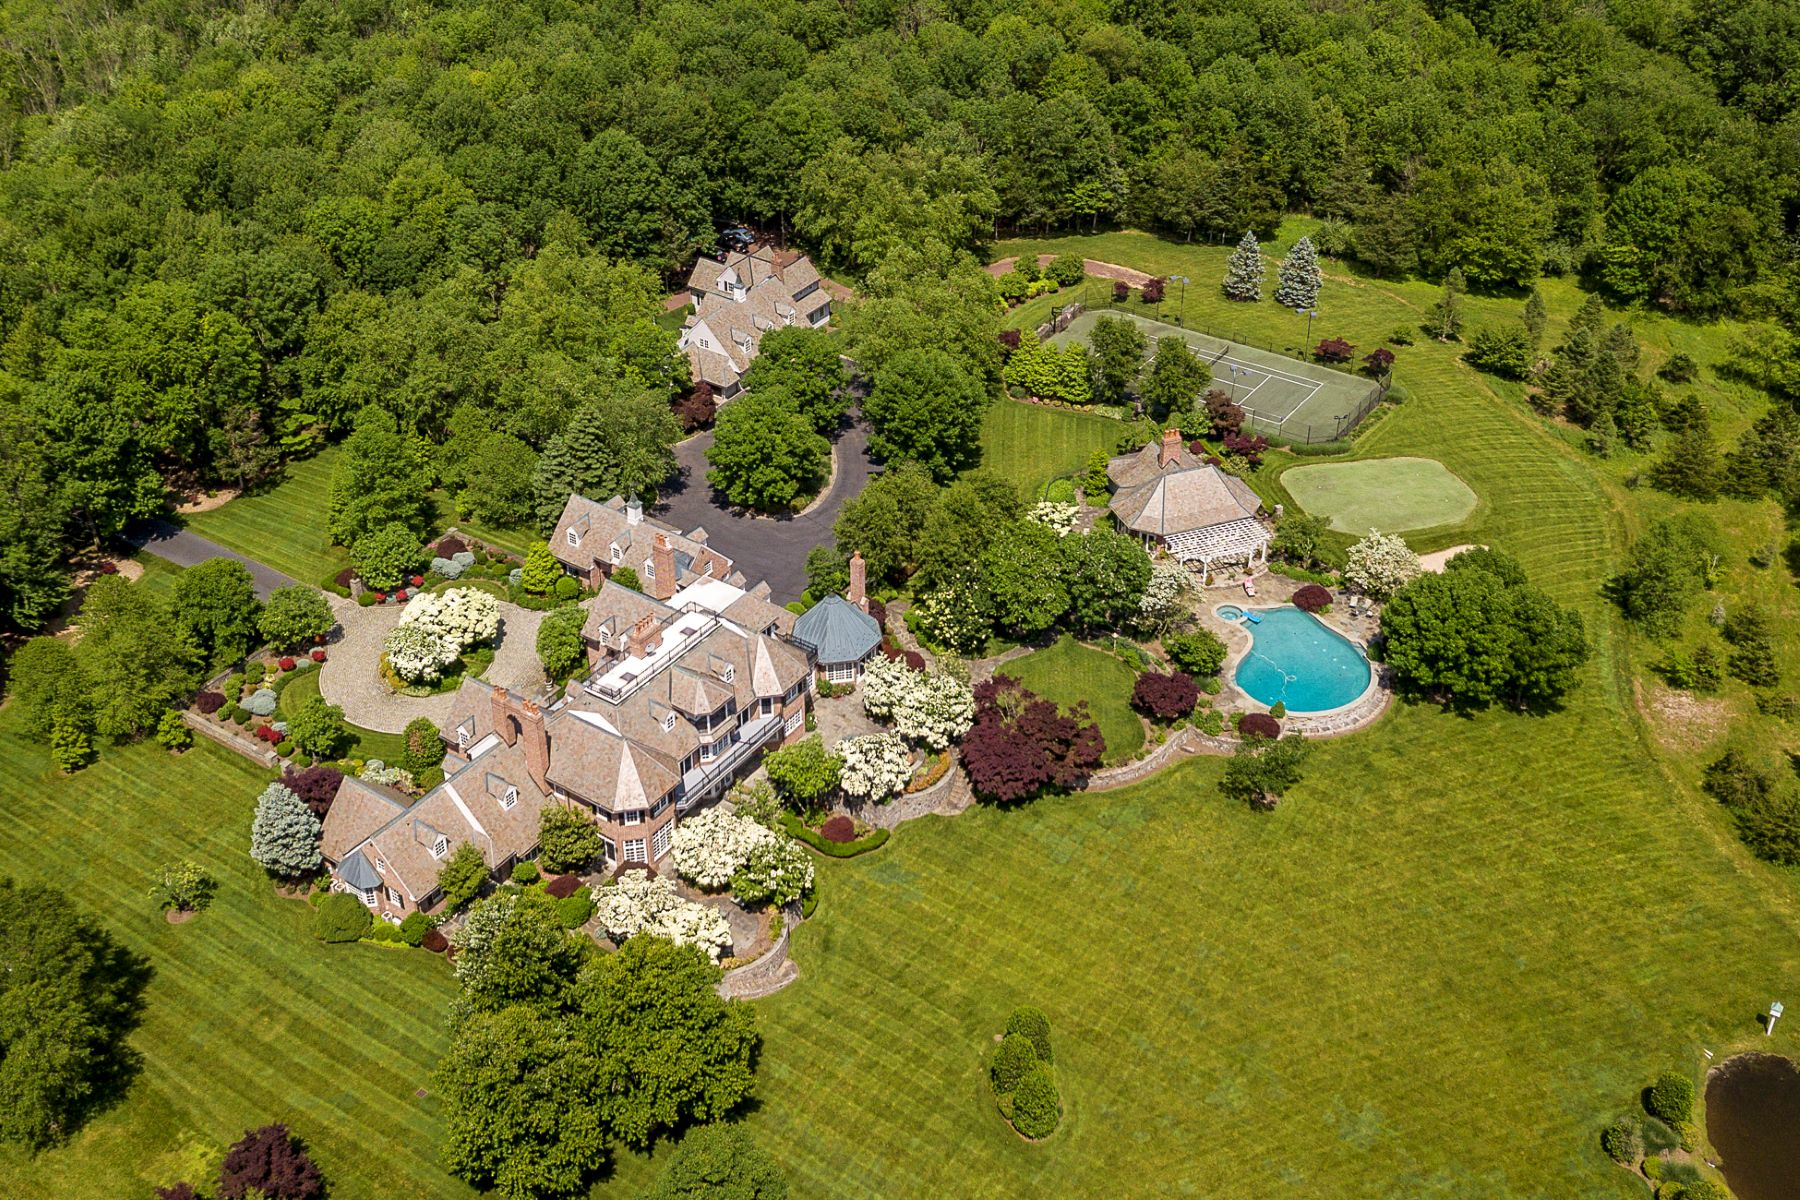 Property للـ Sale في Private Compound with Every Amenity Imaginable 82 Aunt Molly Road, Hopewell, New Jersey 08525 United States